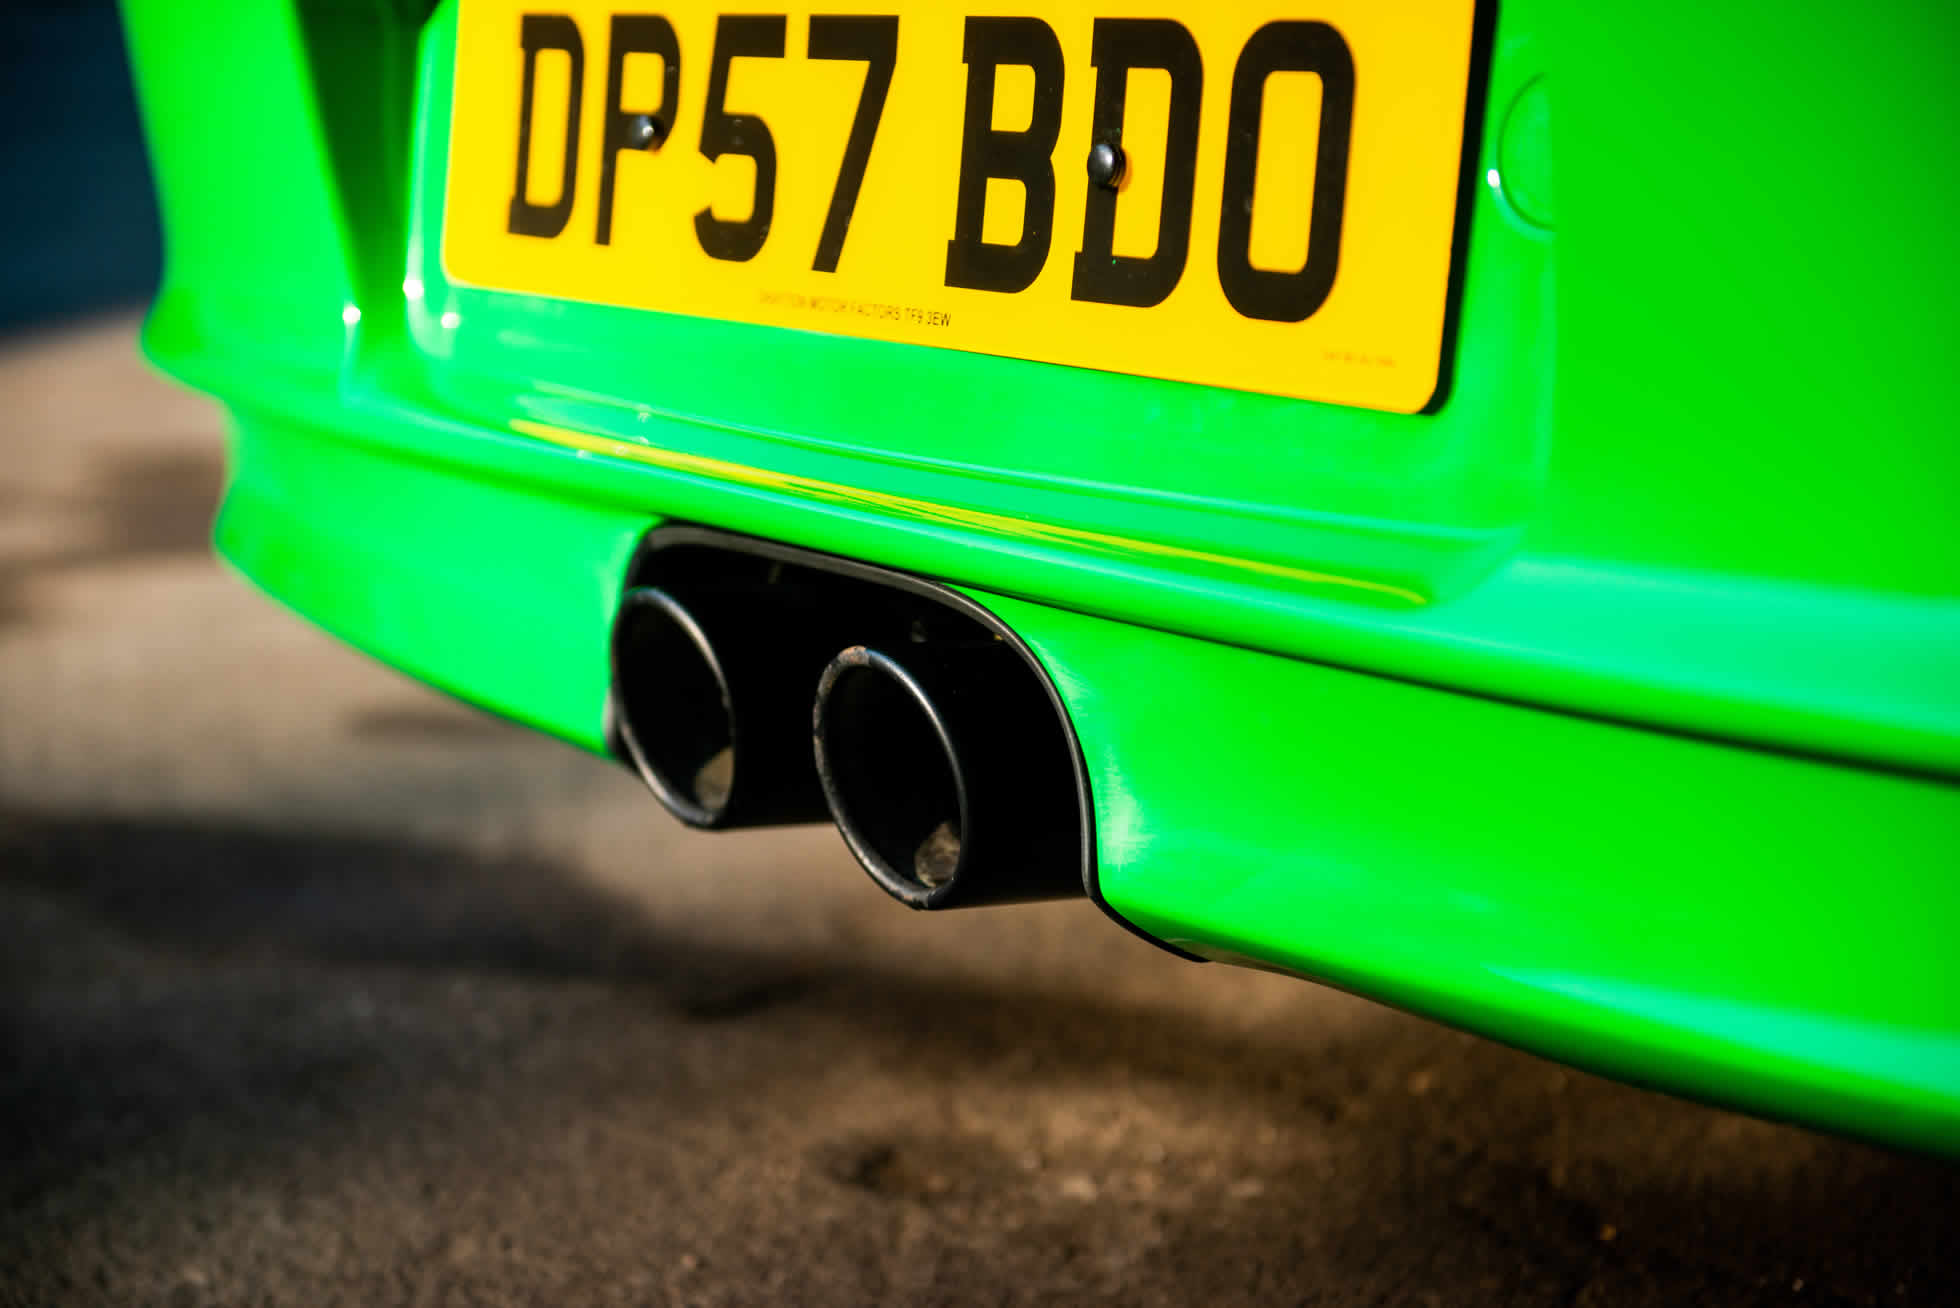 For Sale 2008 Porsche 911 GT3 RS (997.1) exhaust pipes